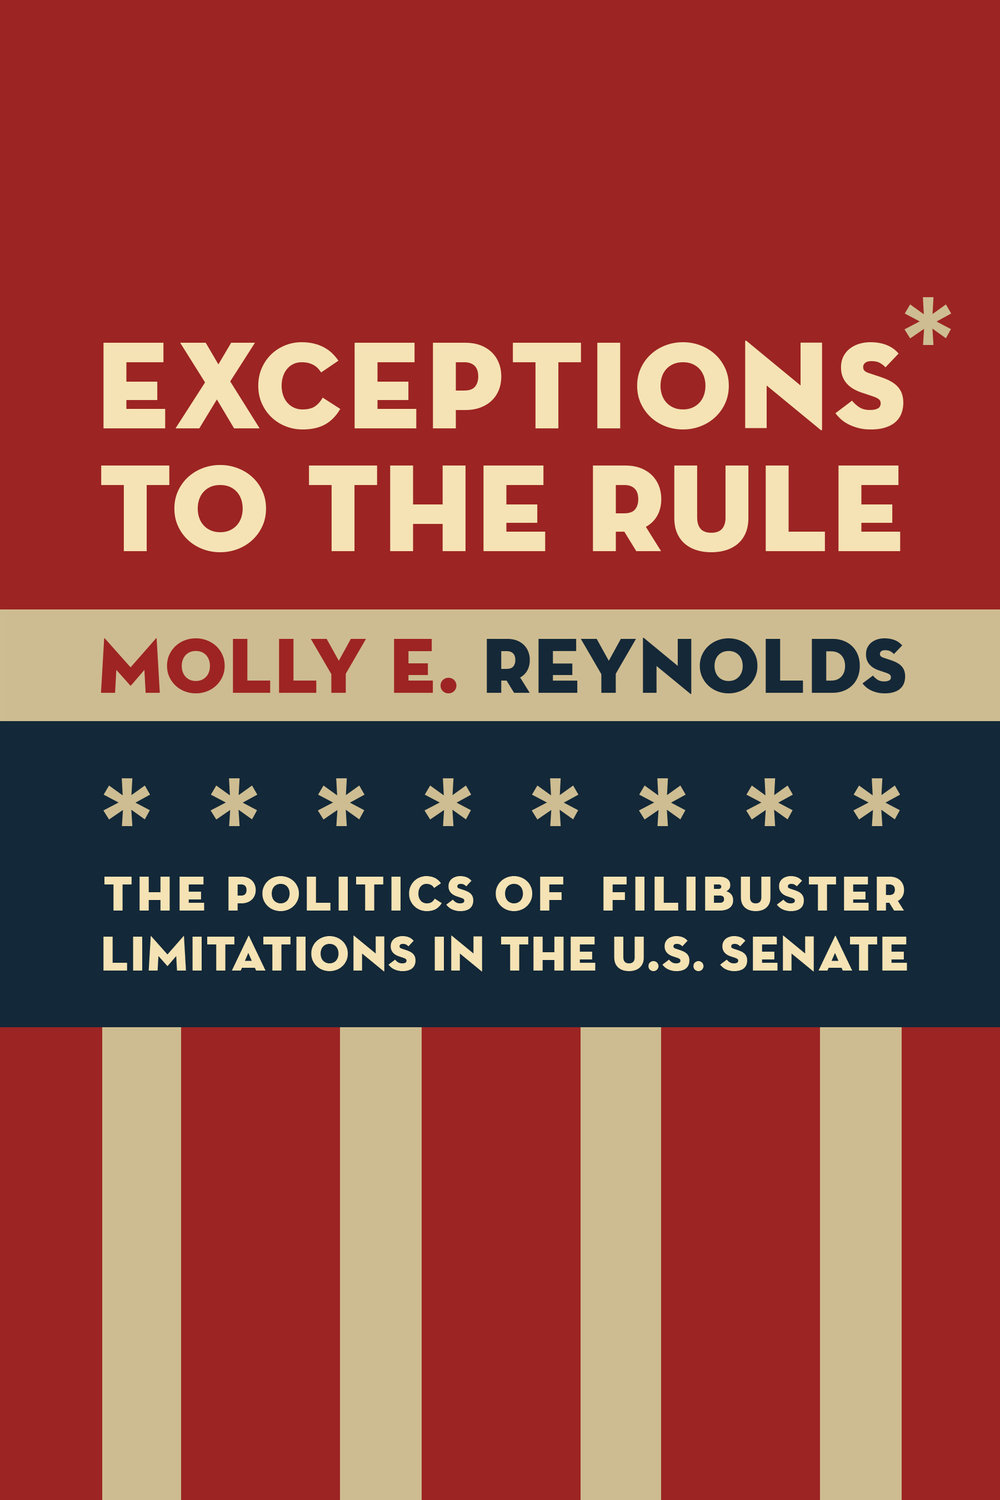 Molly Reynolds Exceptions to the Rule.jpg